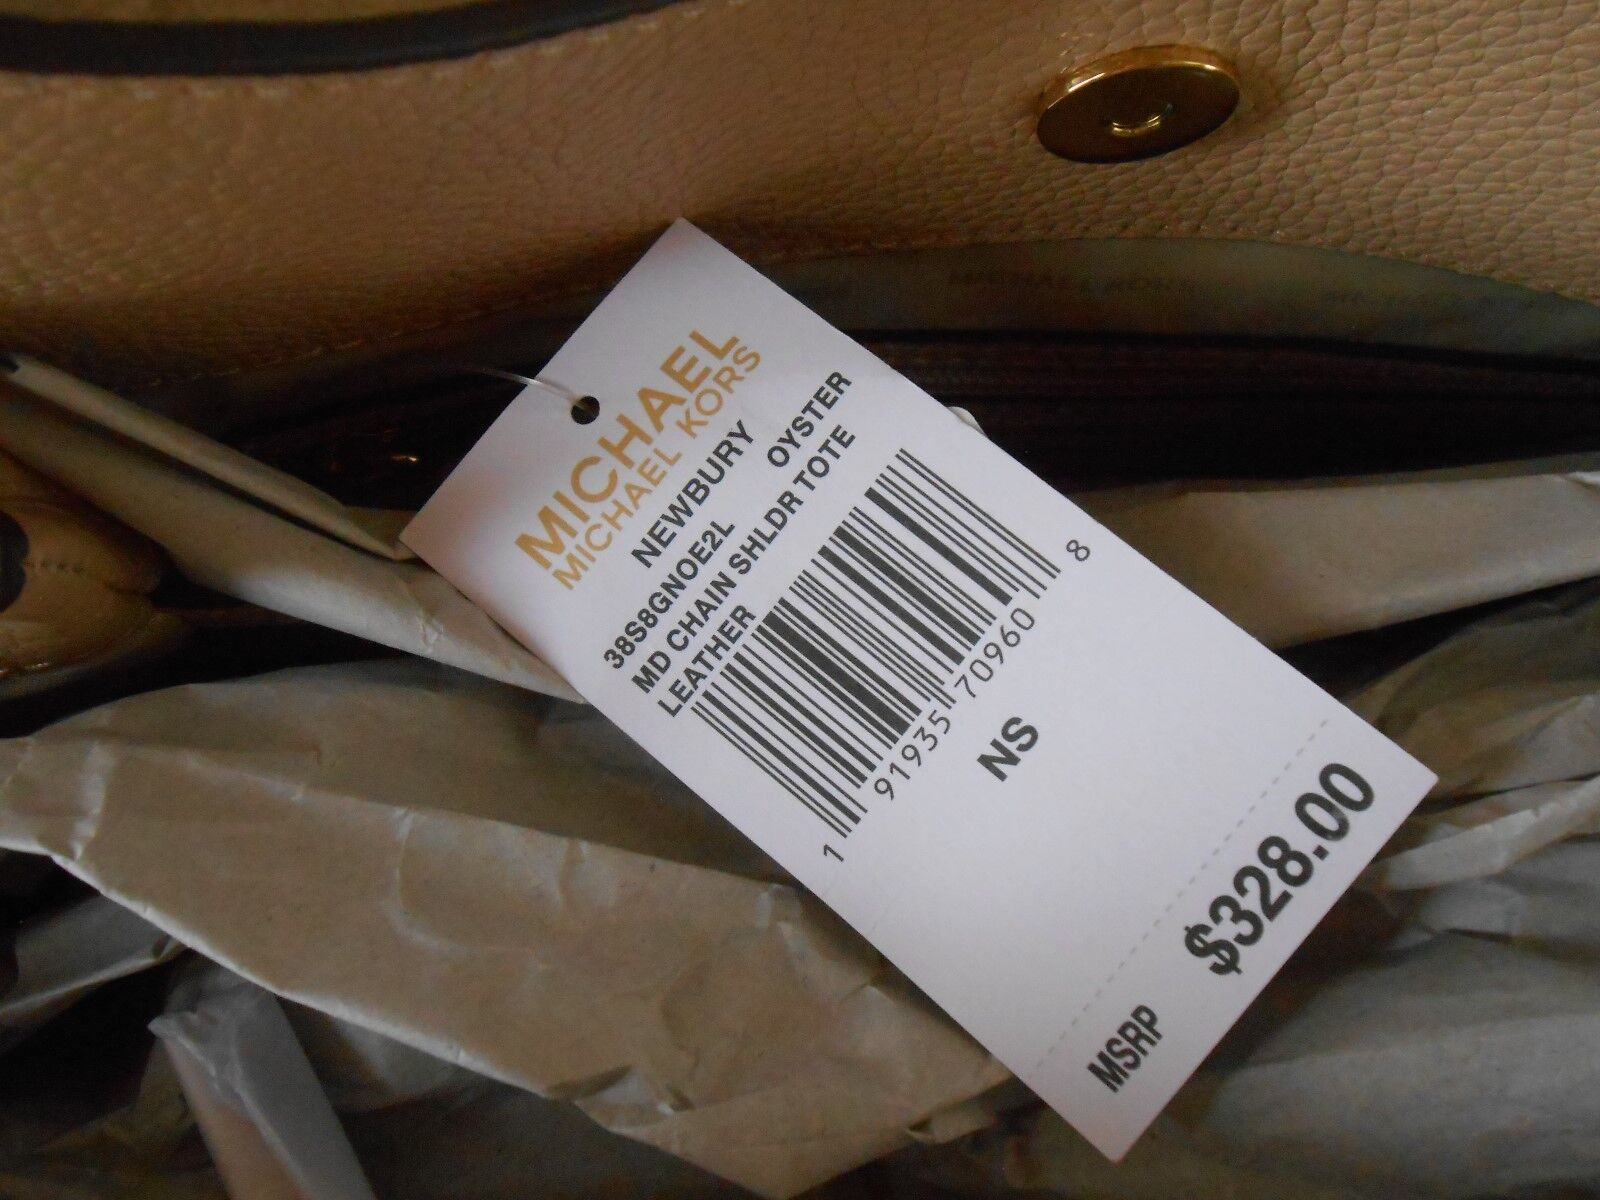 2fa8f9bb7cec Michael Kors Newbury MD Chain Shoulder Tote in Oyster Leather for sale  online